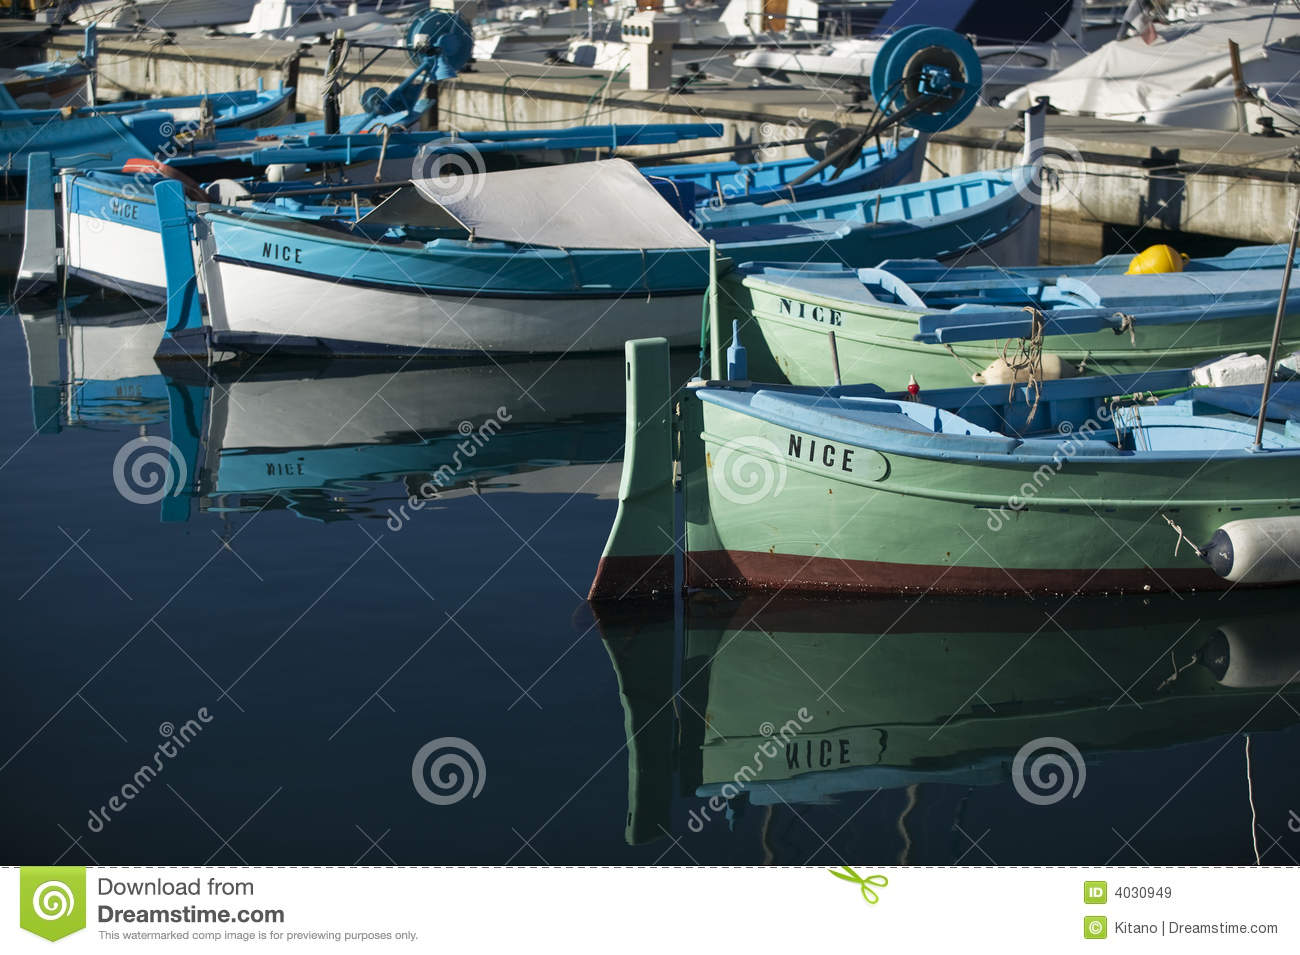 Nice fishing boats at harbor royalty free stock images for Nice fishing boats